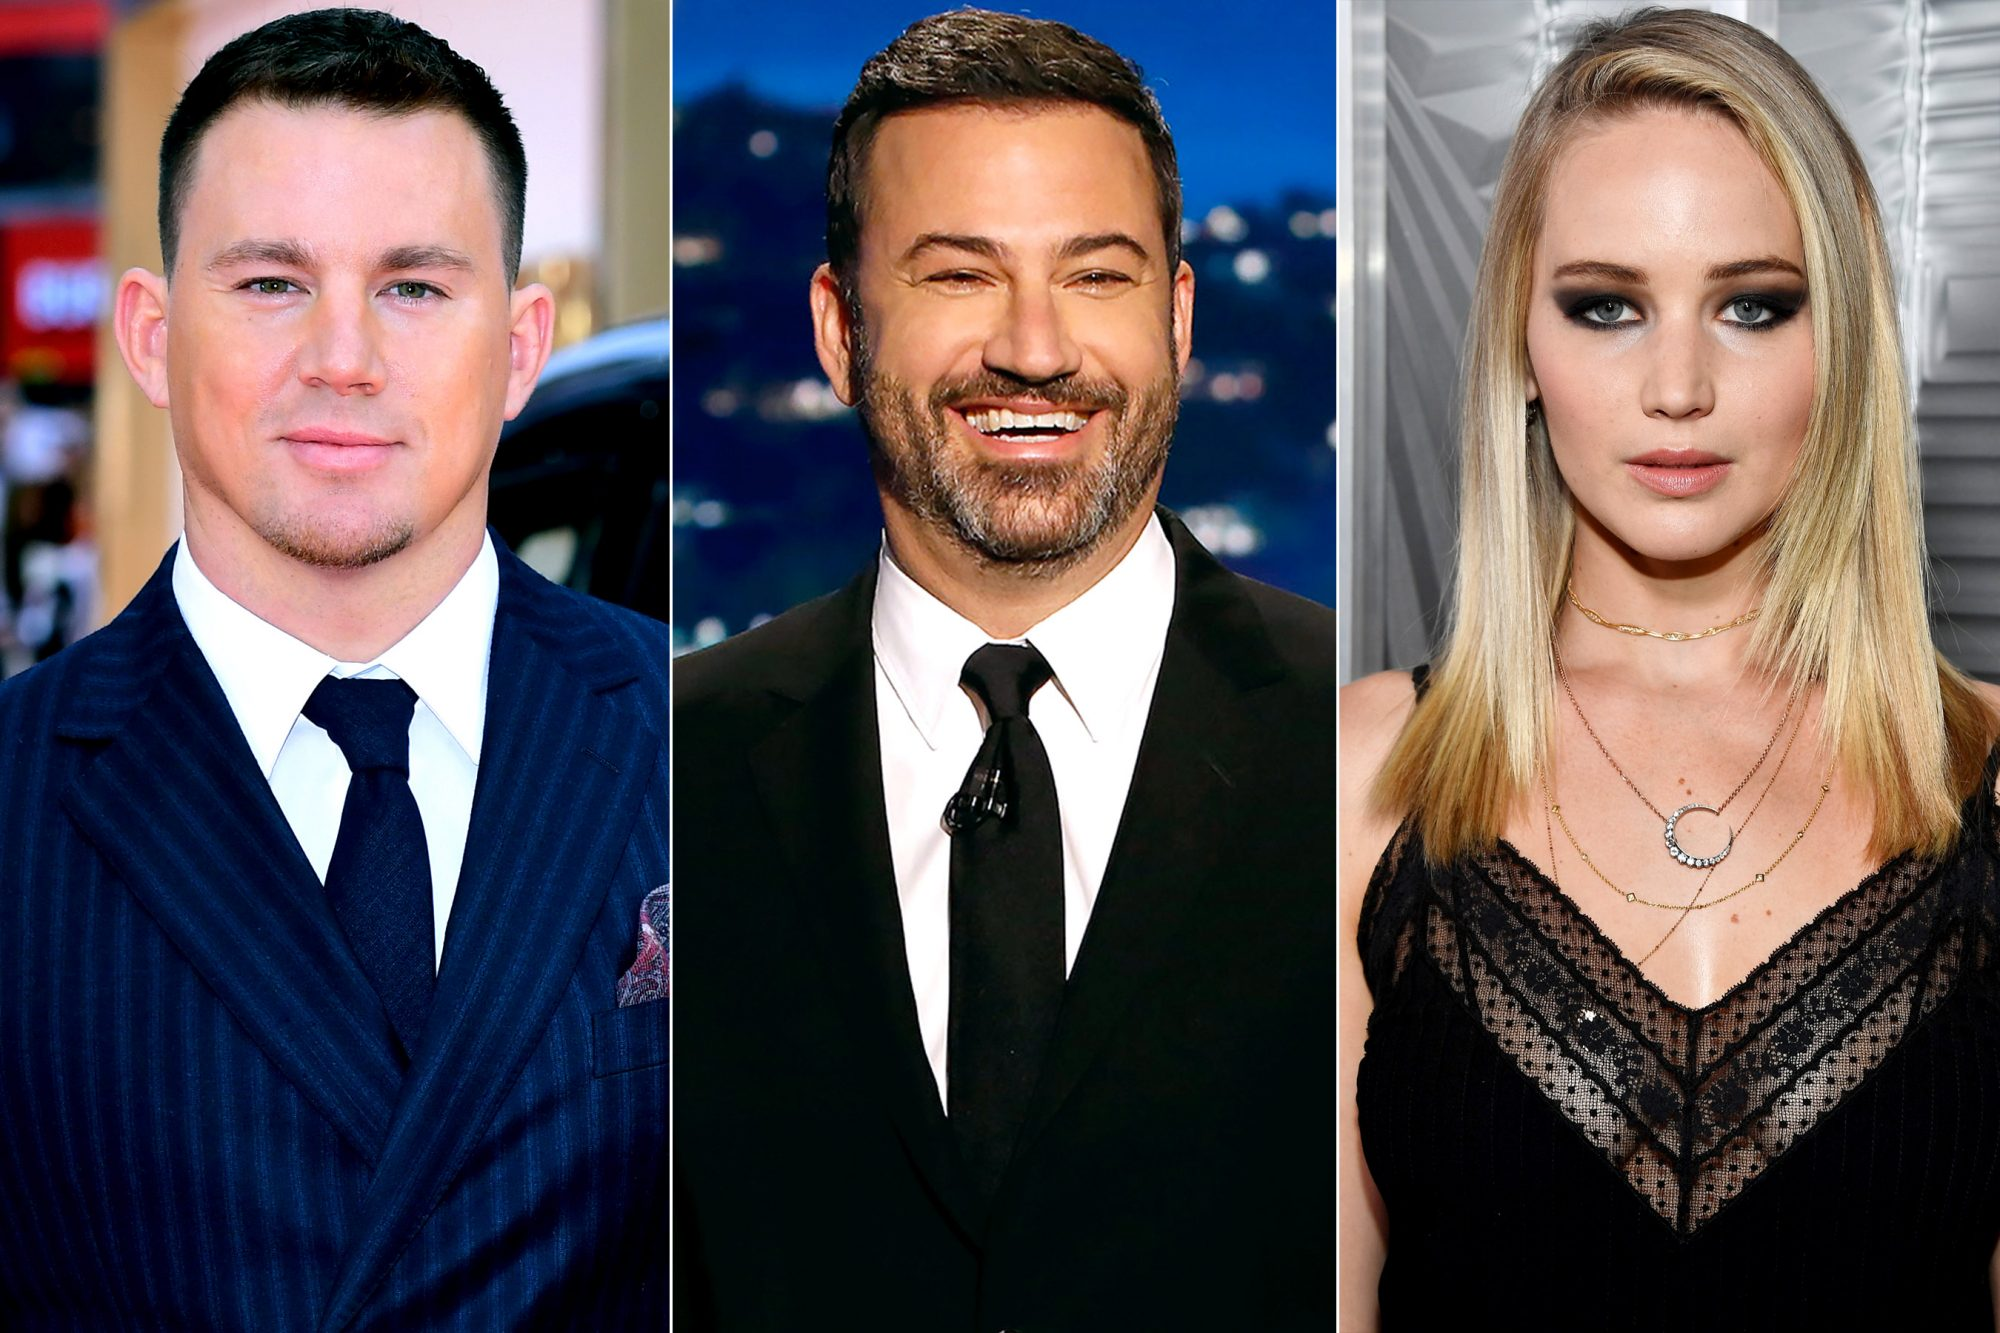 Channing Tatum / Jimmy Kimmel / Jennifer Lawrence